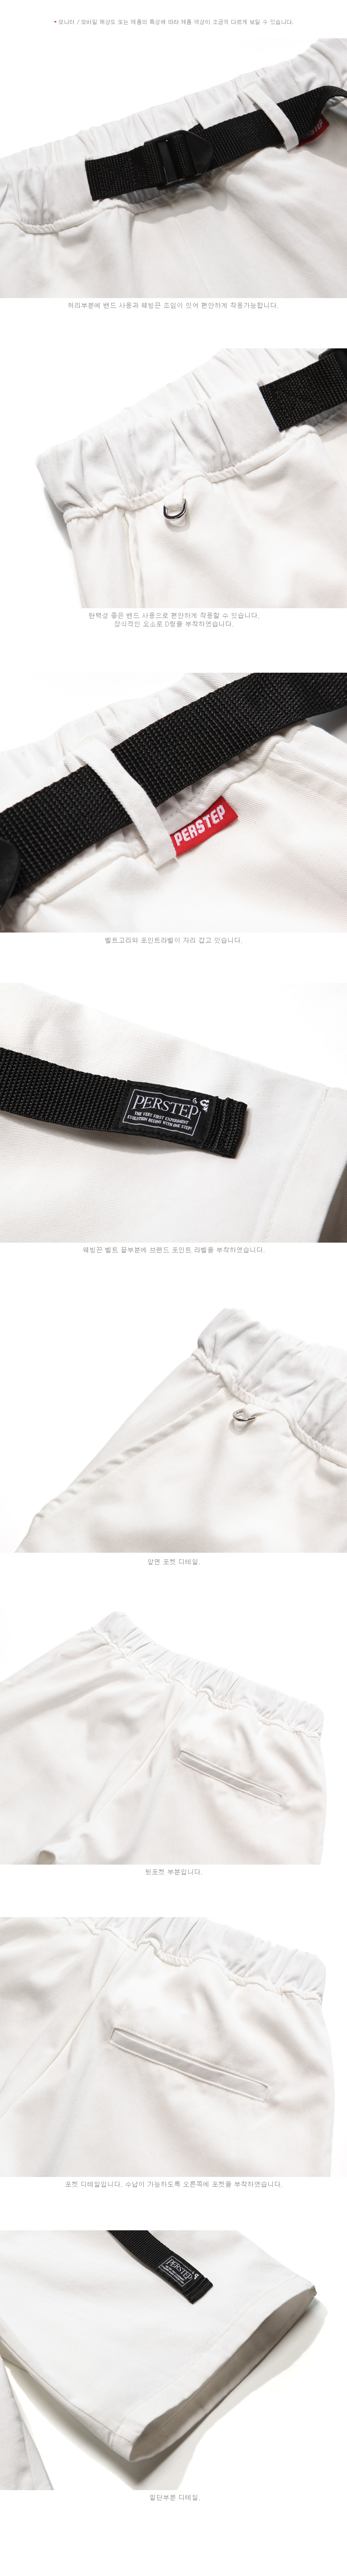 20180415_ps_remind_short_pants_ivory_ms_02.jpg